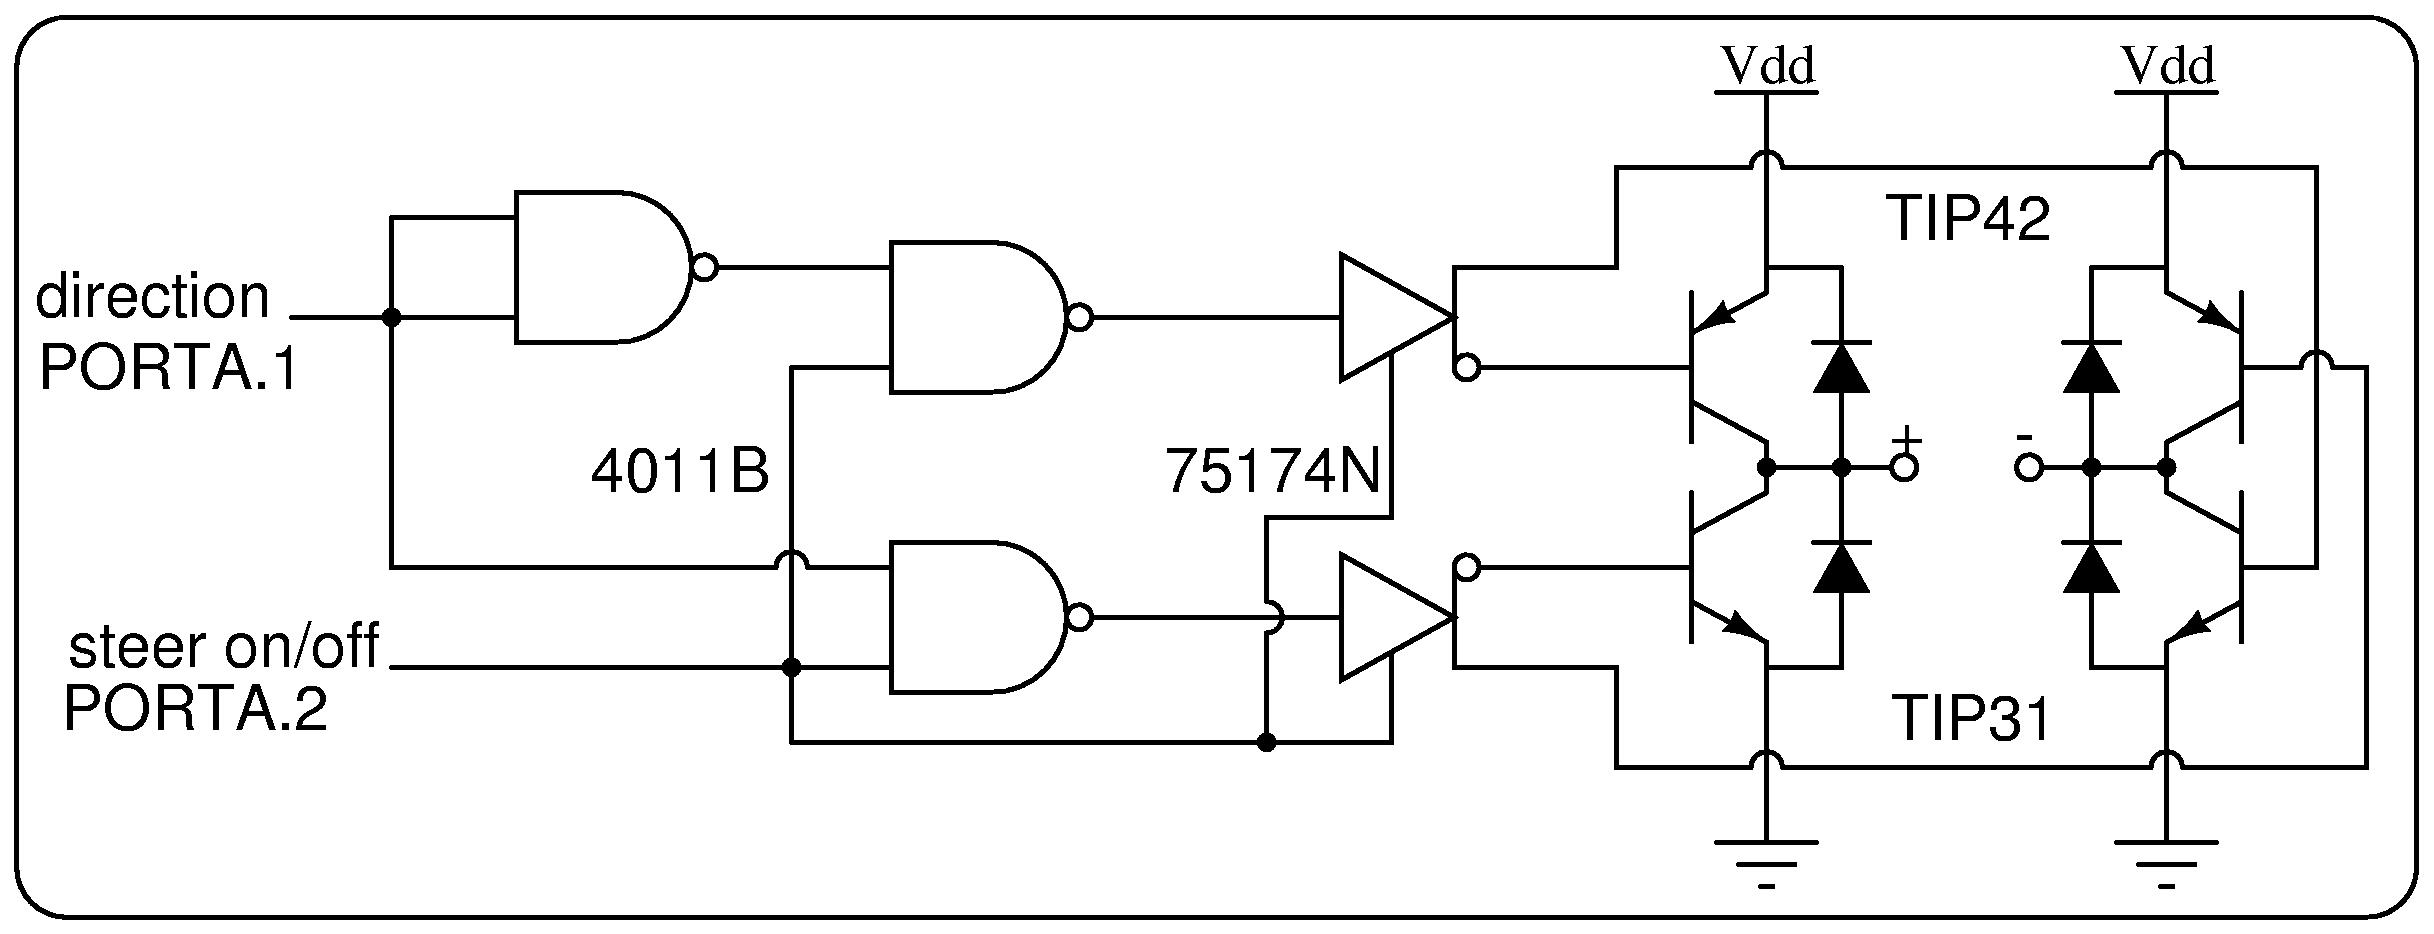 Results Page 336 About Switching Frequency Circuit For 2 Kv Inside Circuits Gt Ac To Dc Converter L9088 Nextgr Autonomous Car